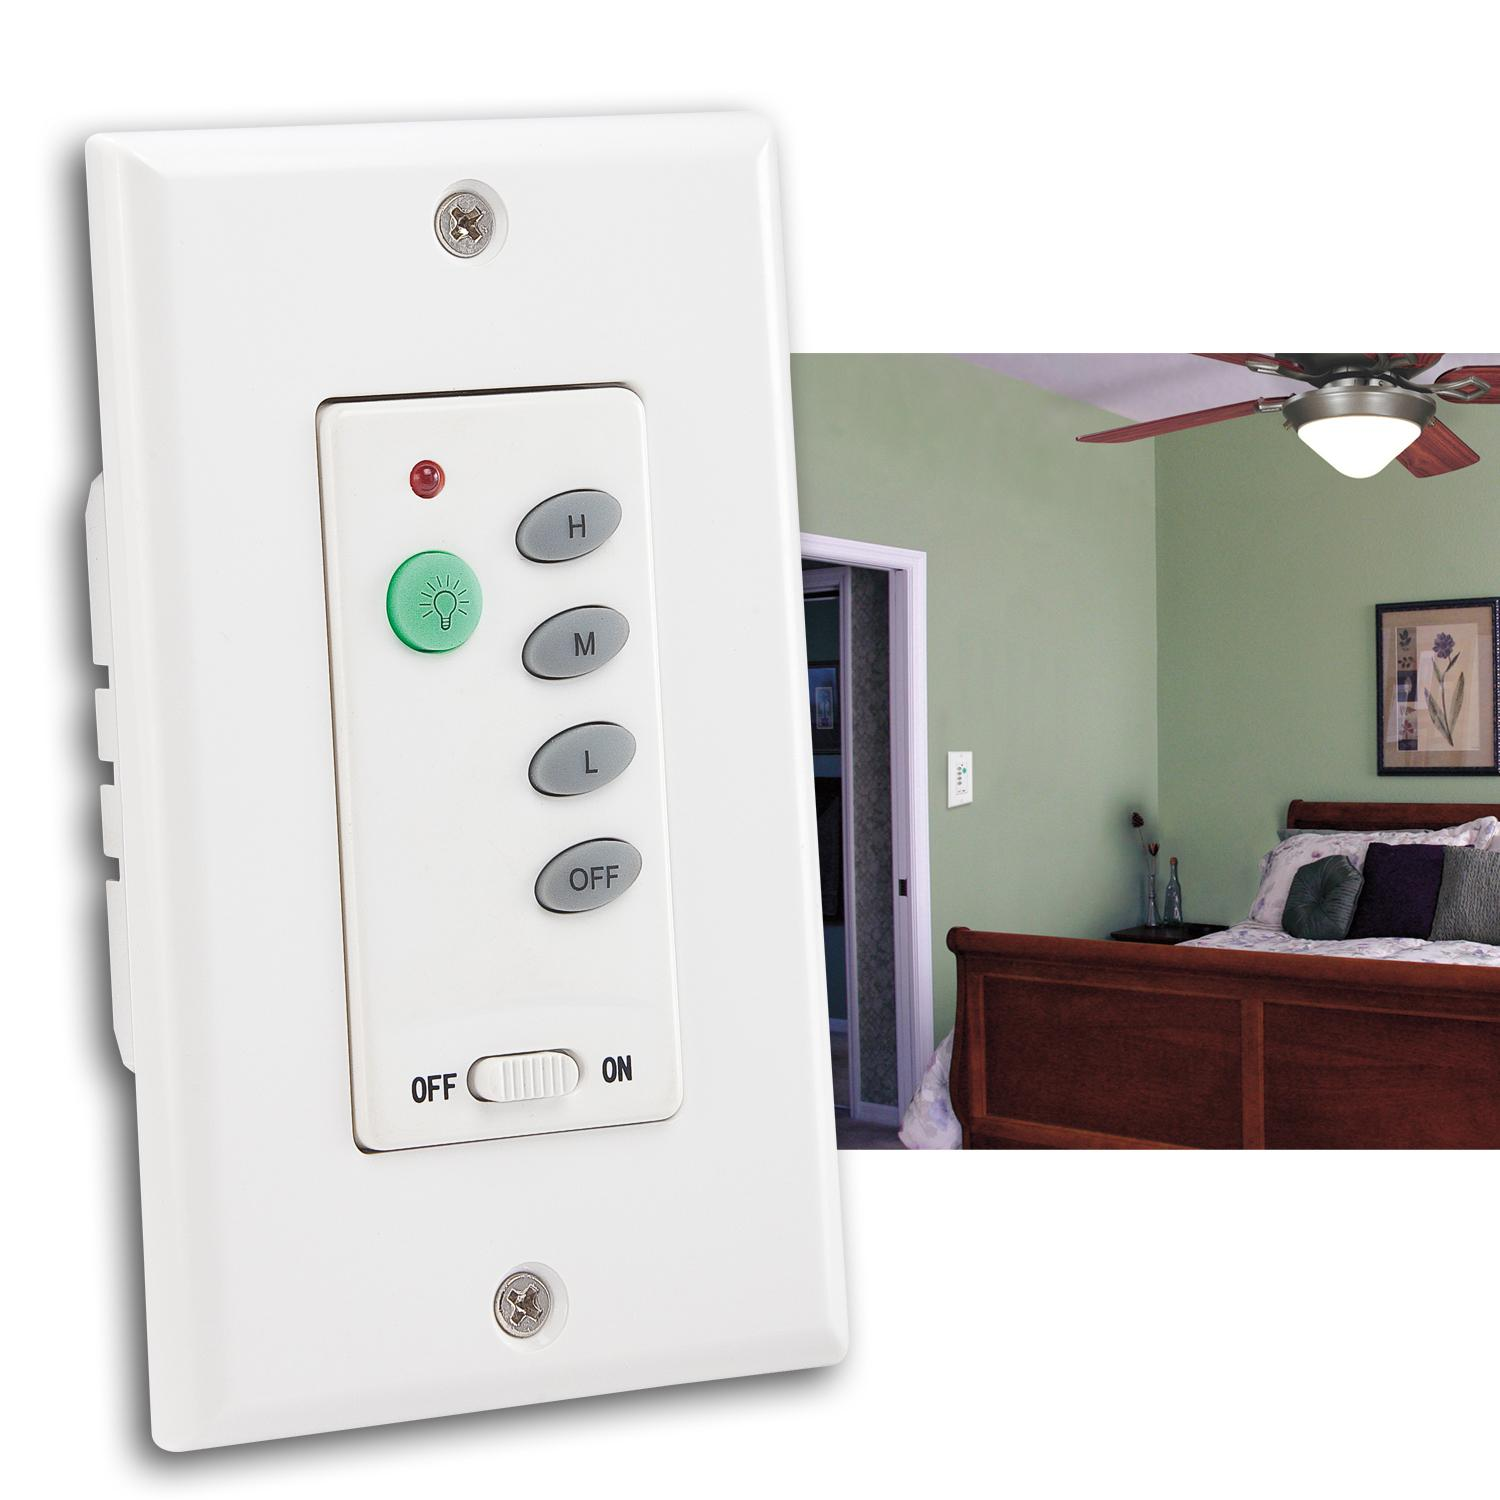 Westinghouse 7787500 ceiling fan and light wall control amazon 7787500 ceiling fan and light wall control aloadofball Image collections